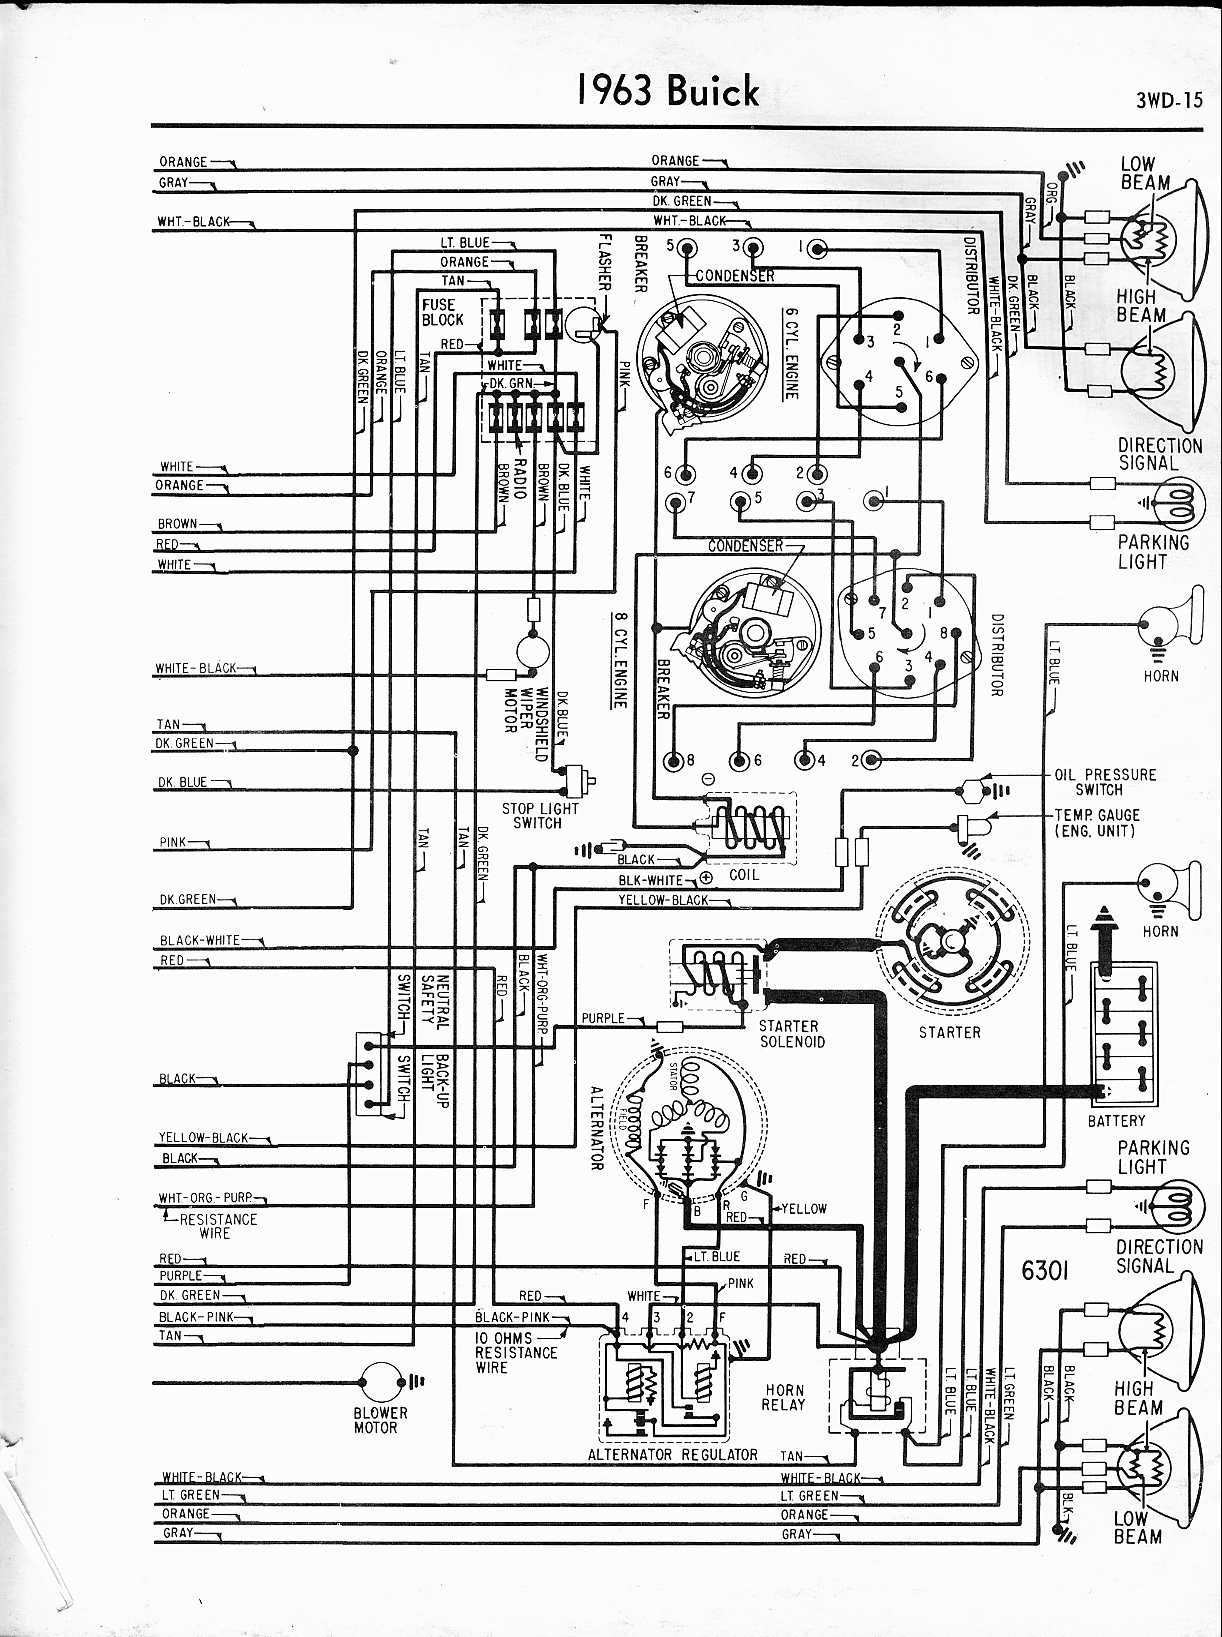 71 caprice wiring diagram [wrg-9159] 1968 buick skylark engine diagram #11